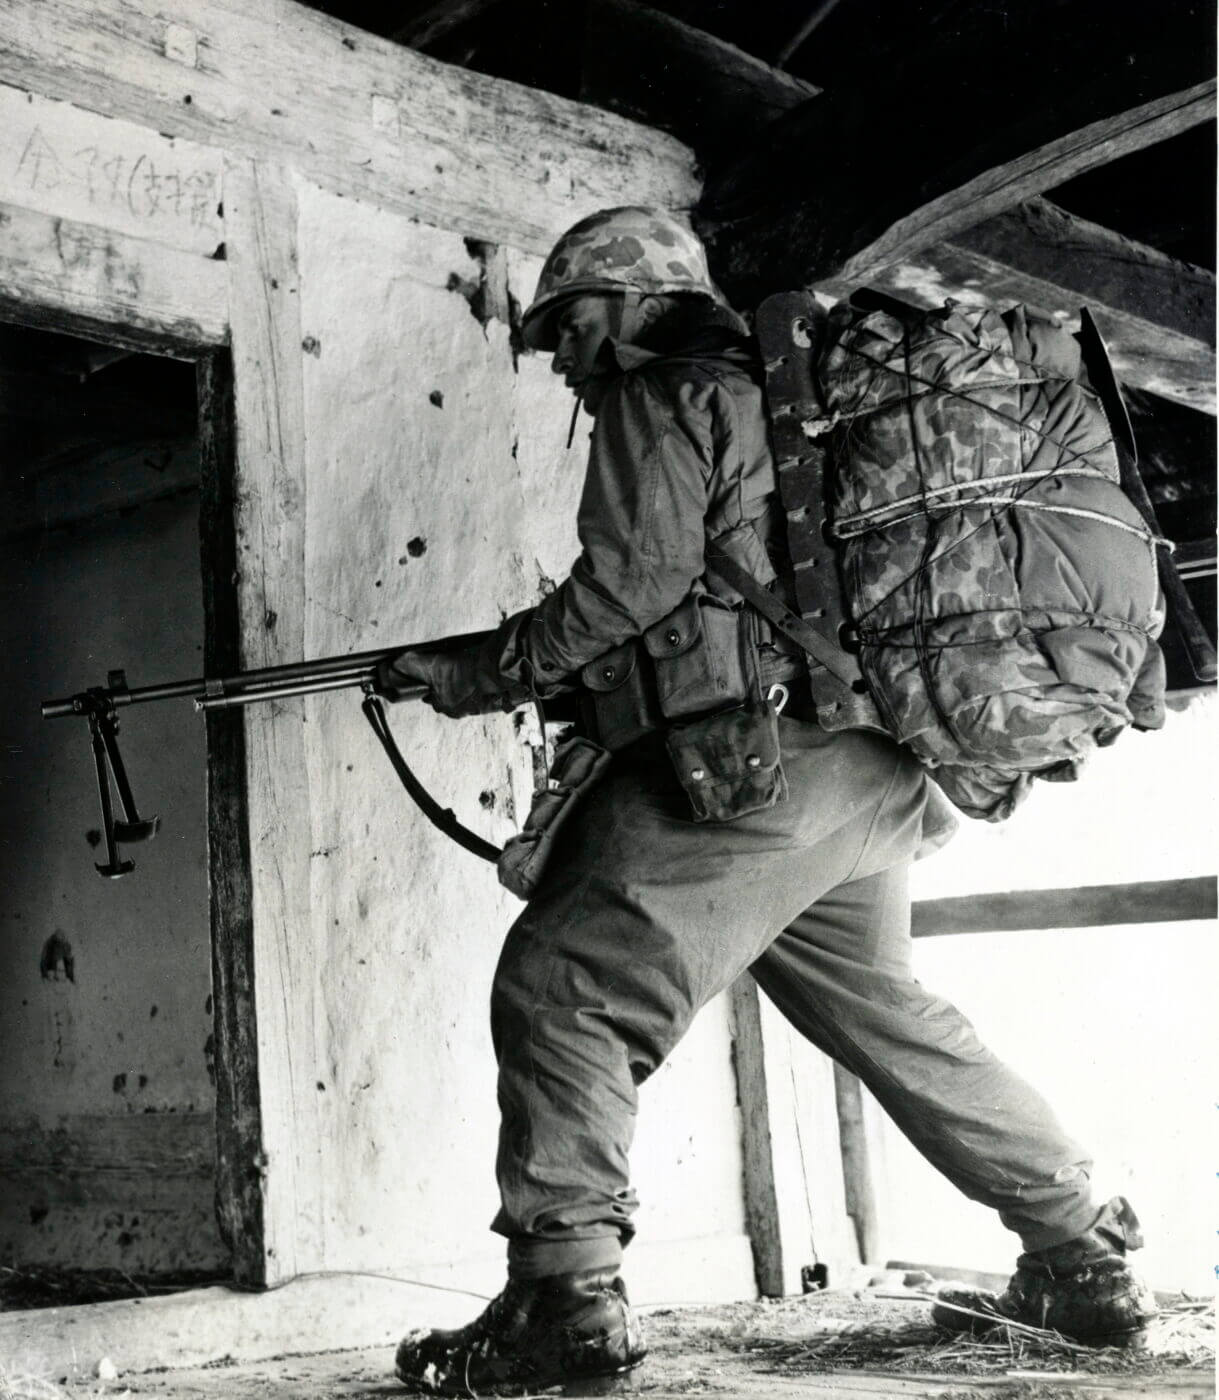 Soldier carrying a BAR